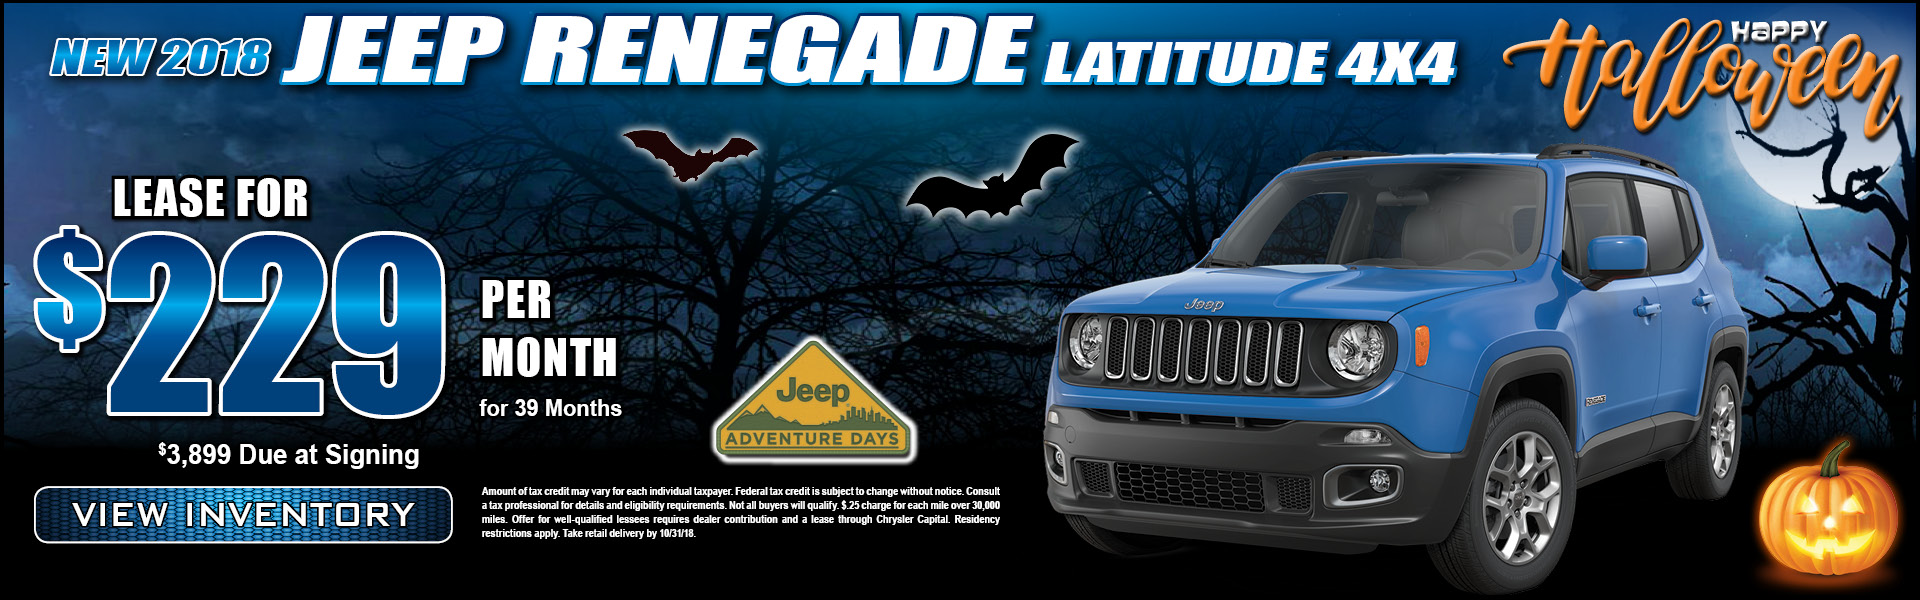 Jeep Renegade $299 Lease